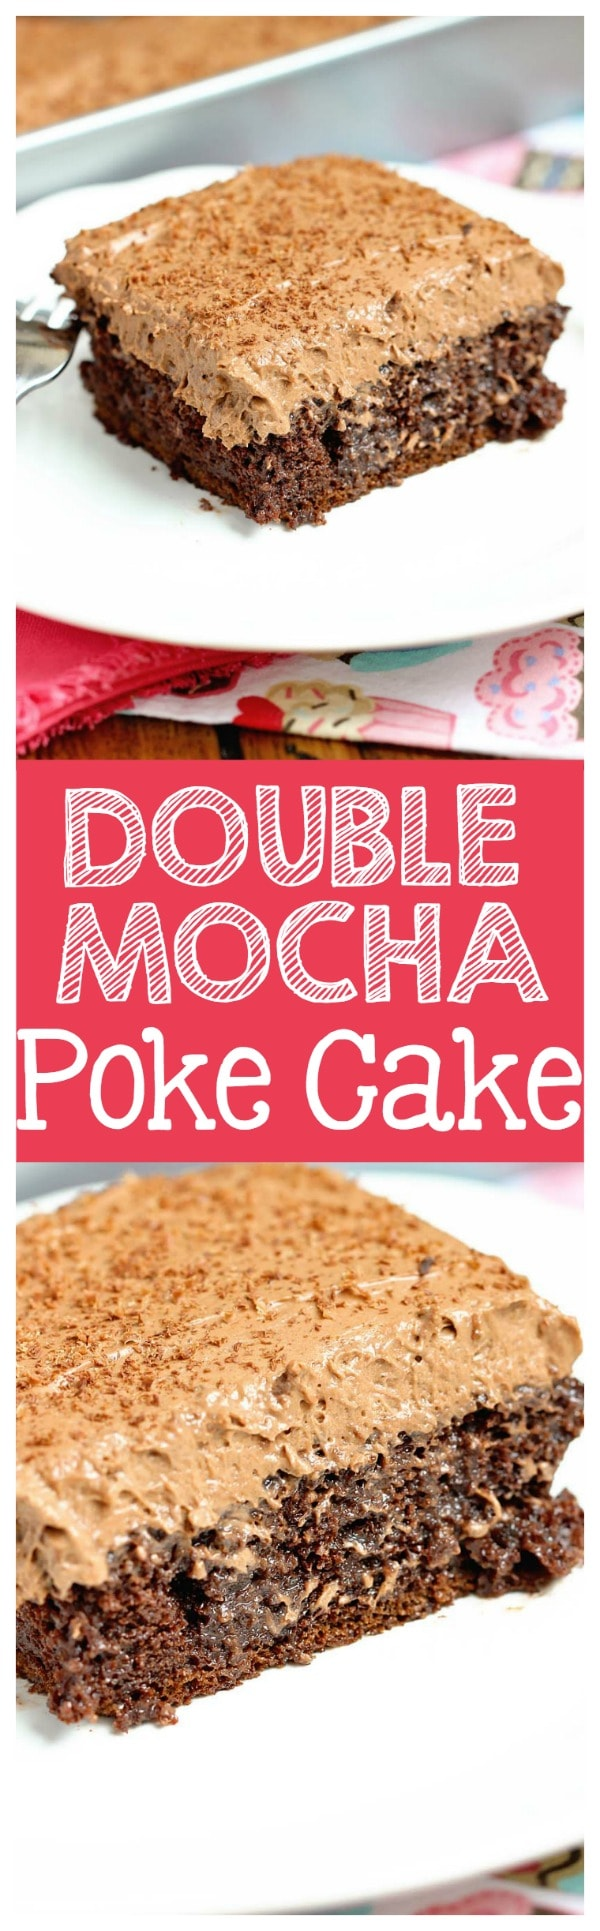 Double Mocha Poke Cake - An easy poke cake recipe using a box cake mix doctored up with pudding mix and expresso powder. It's topped with a heavenly mocha pudding whipped icing!